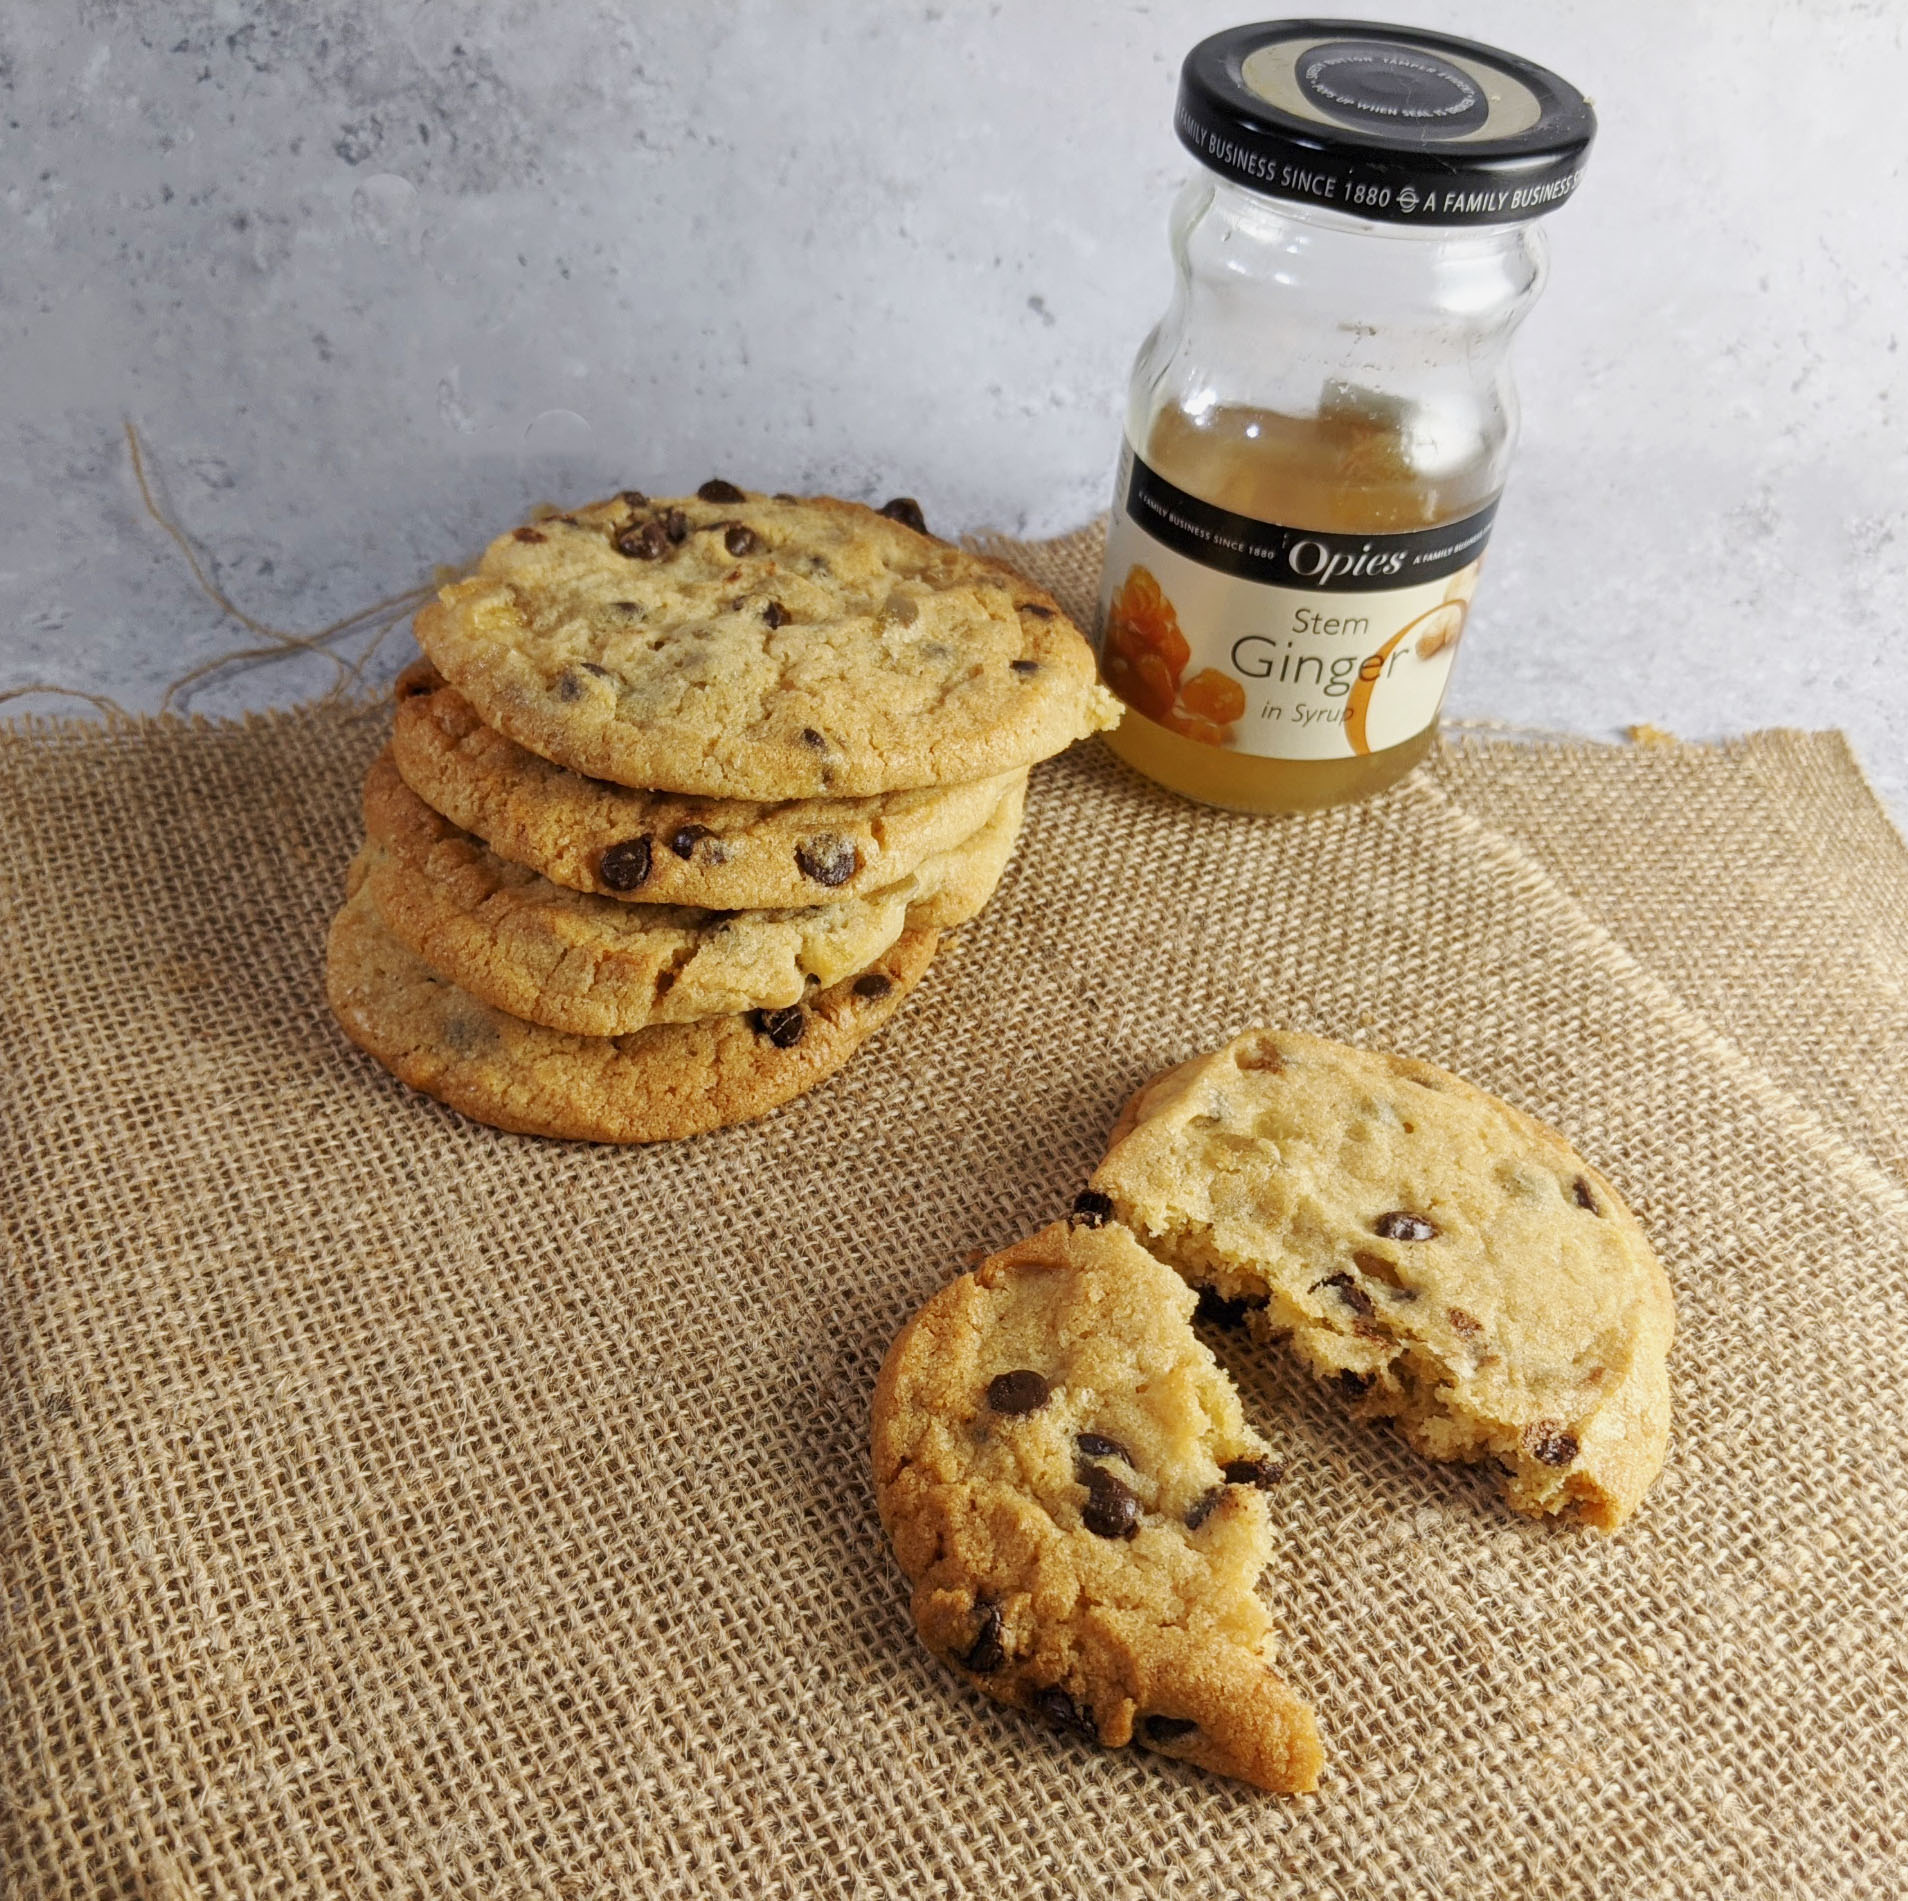 Chocolate Chip and Ginger Cookies with Opies